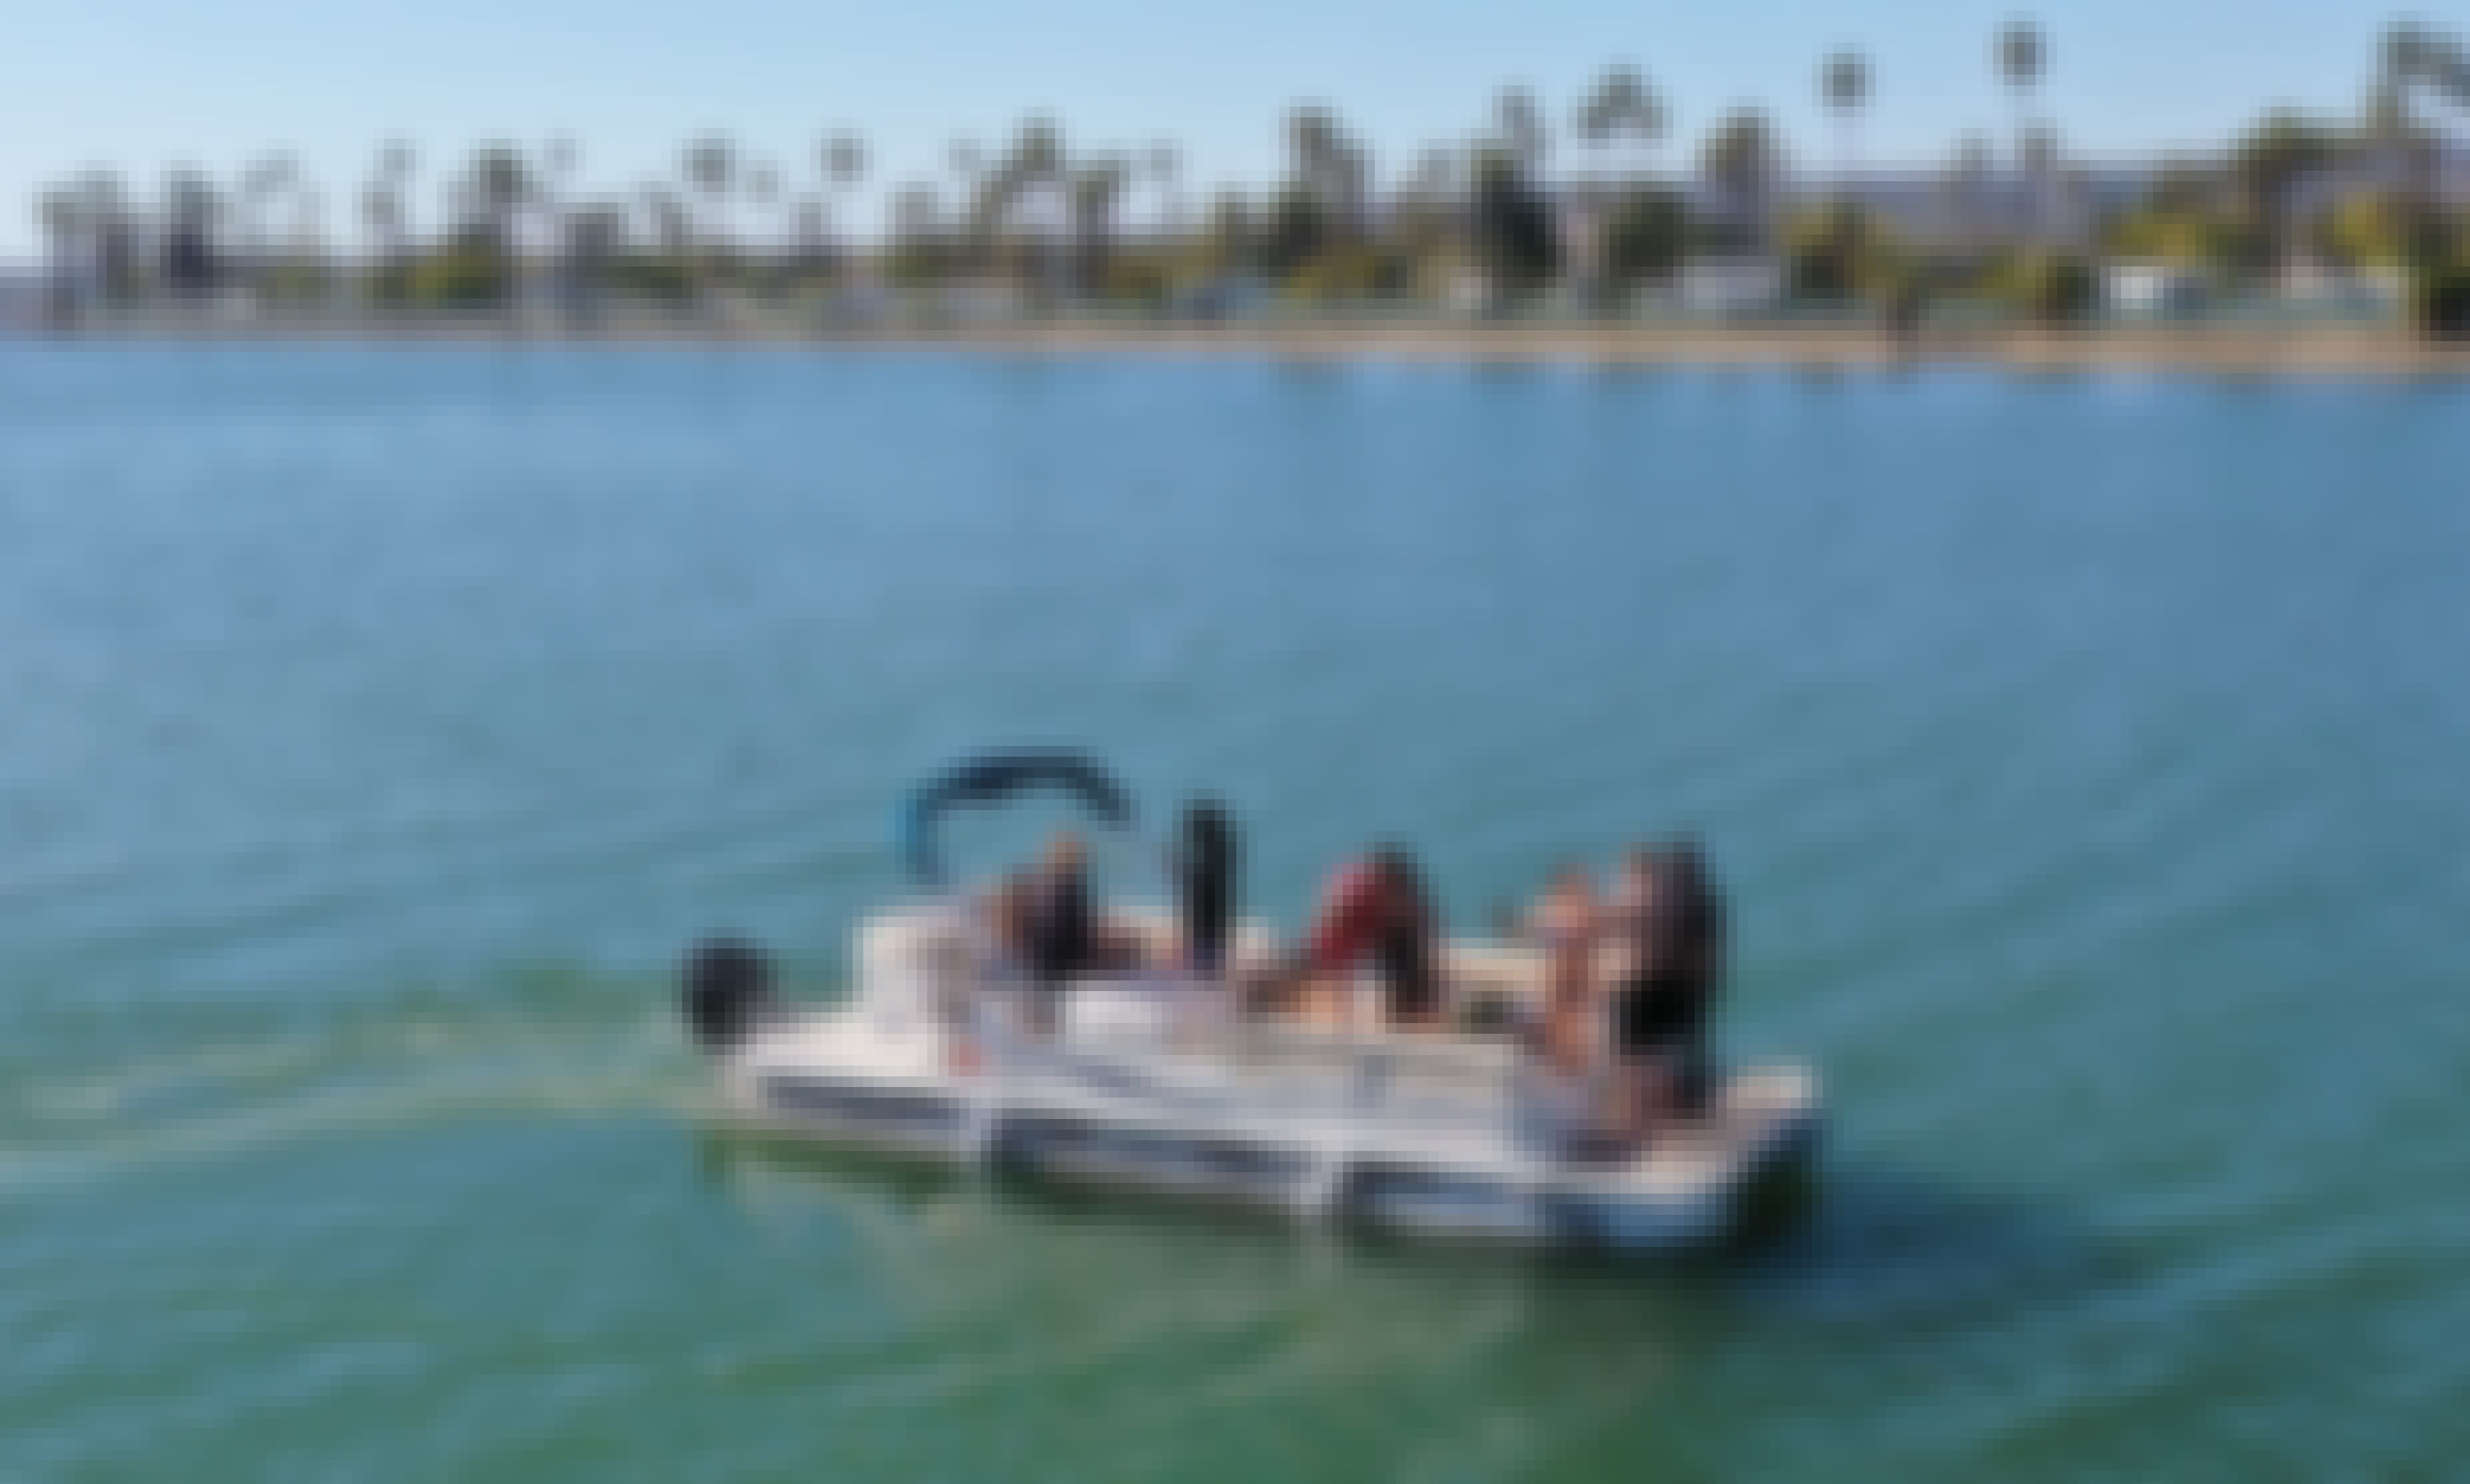 24' Pontoon Party Boat in Mission Bay! (12 People!) Rated #1🥇Party Cruise in San Diego! (Mission Bay or Downtown San Diego)